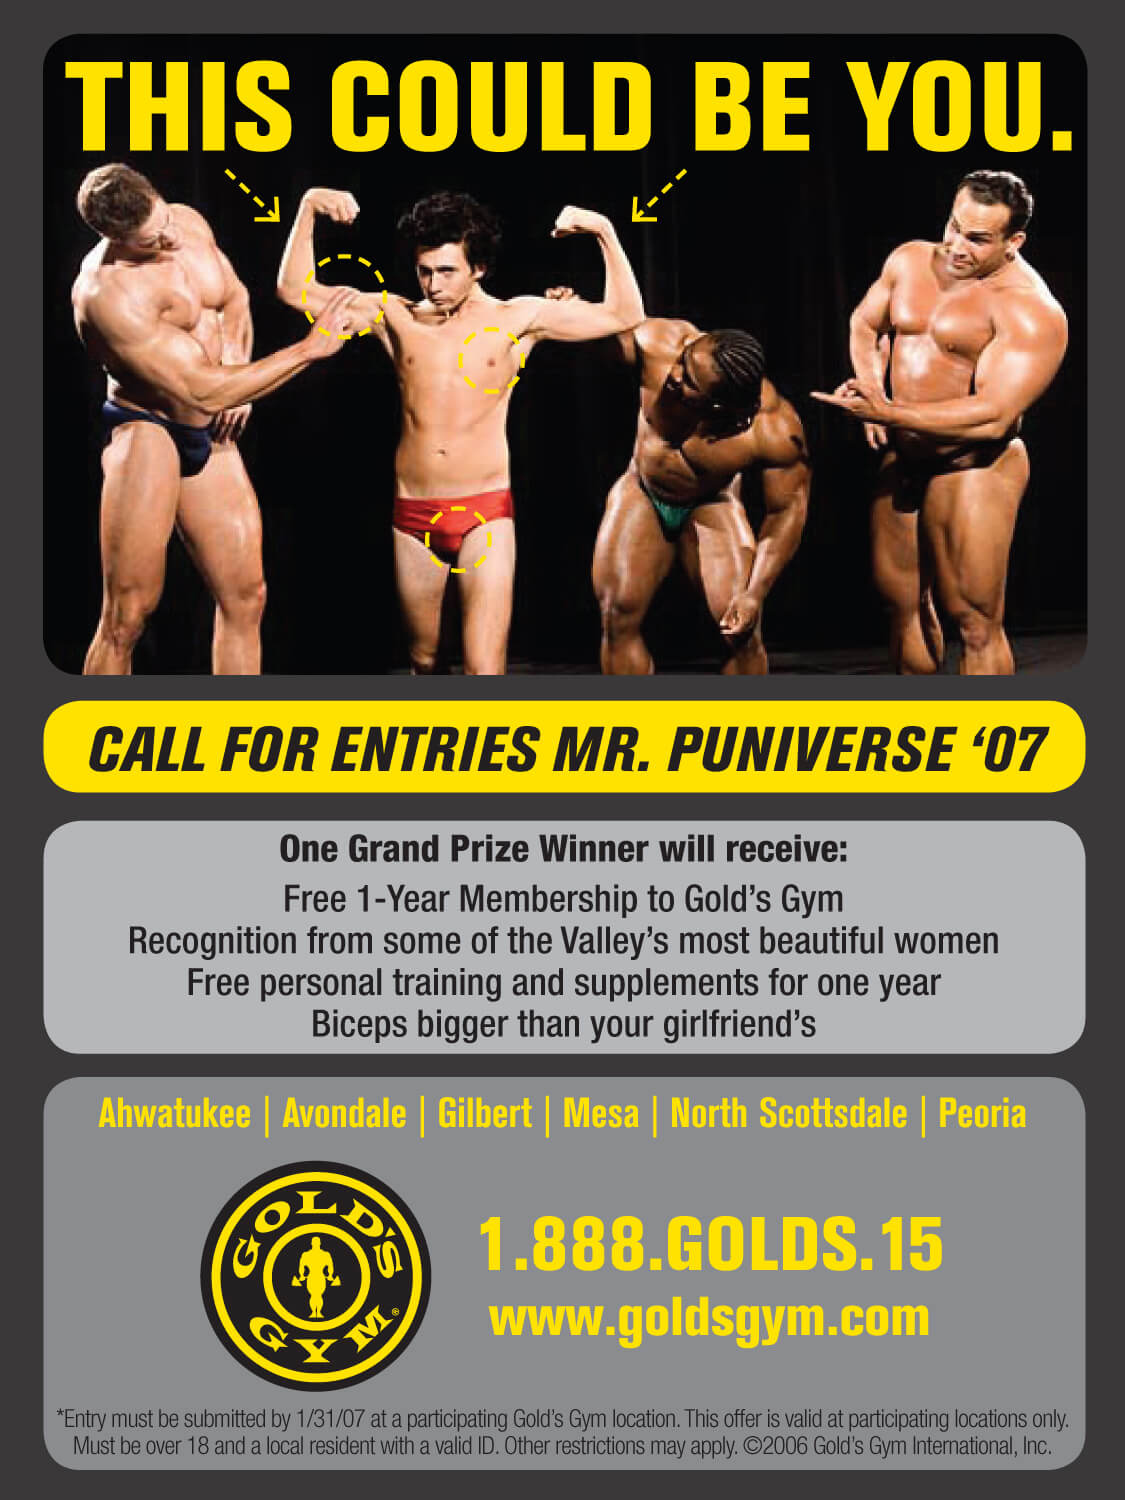 Golds_PuniverseComps_91906.indd